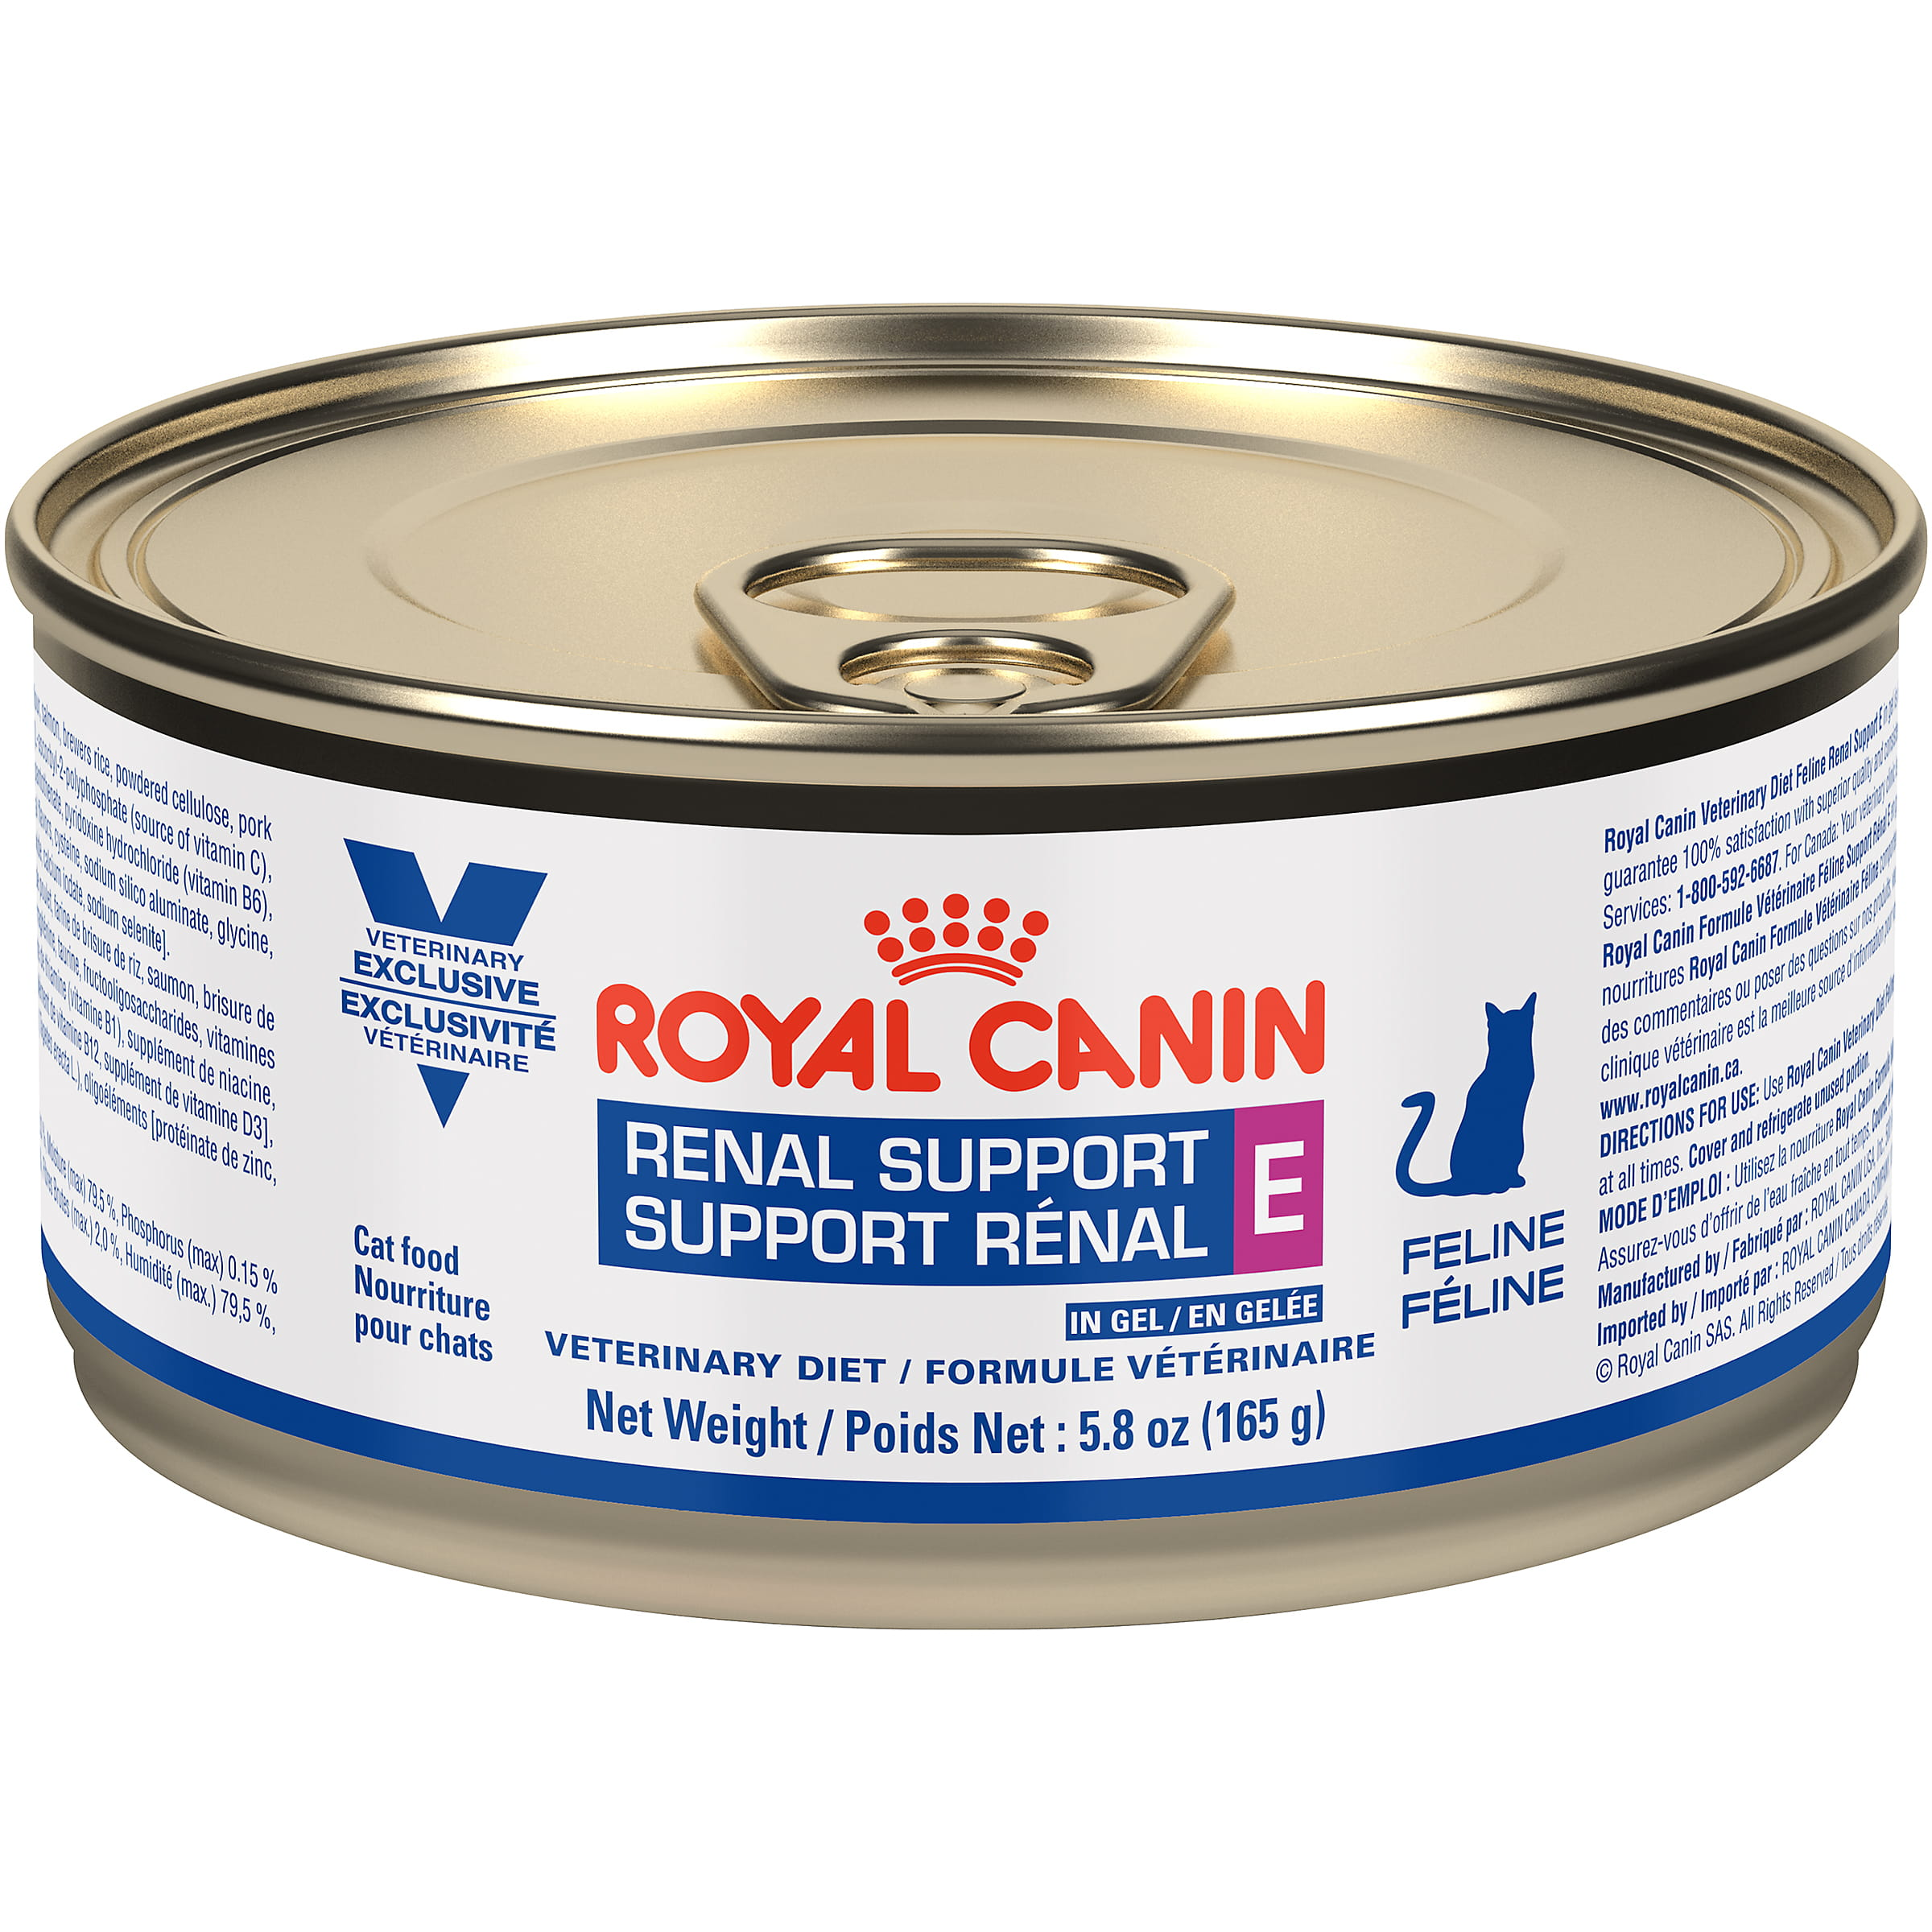 Feline Renal Support E Canned Cat Food